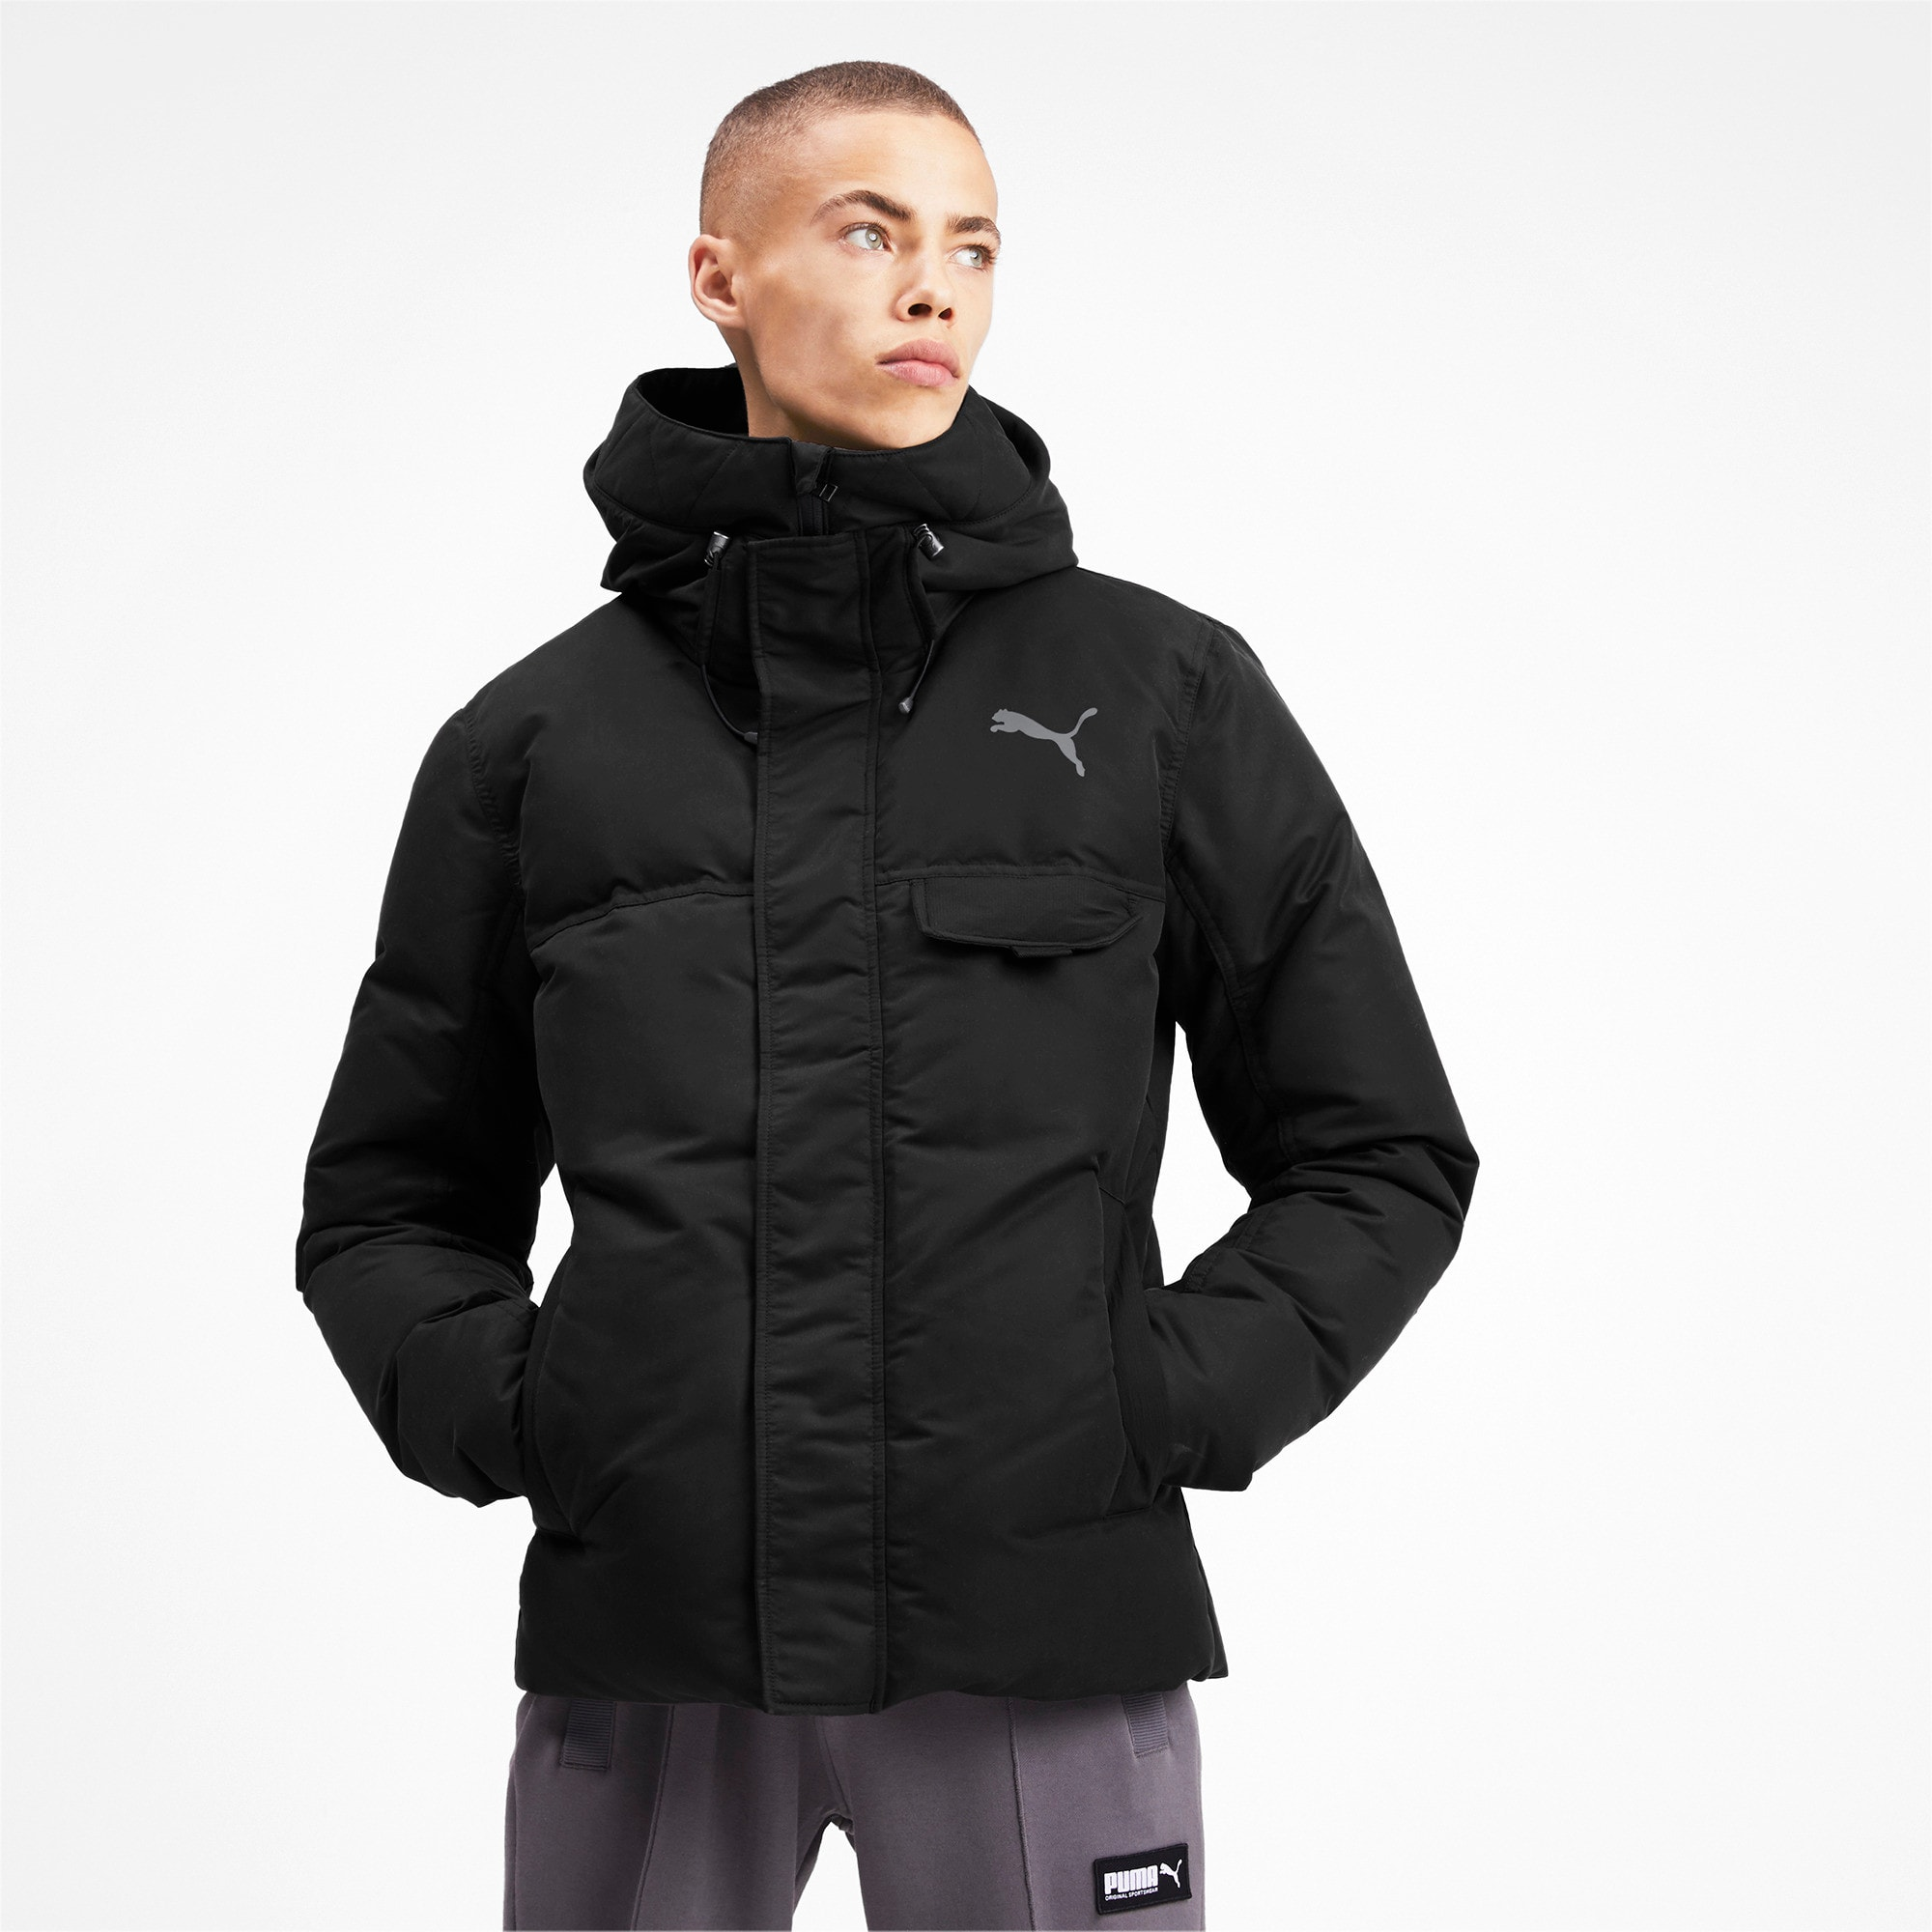 Thumbnail 1 of Streetstyle 480 HD Down Men's Jacket, Puma Black, medium